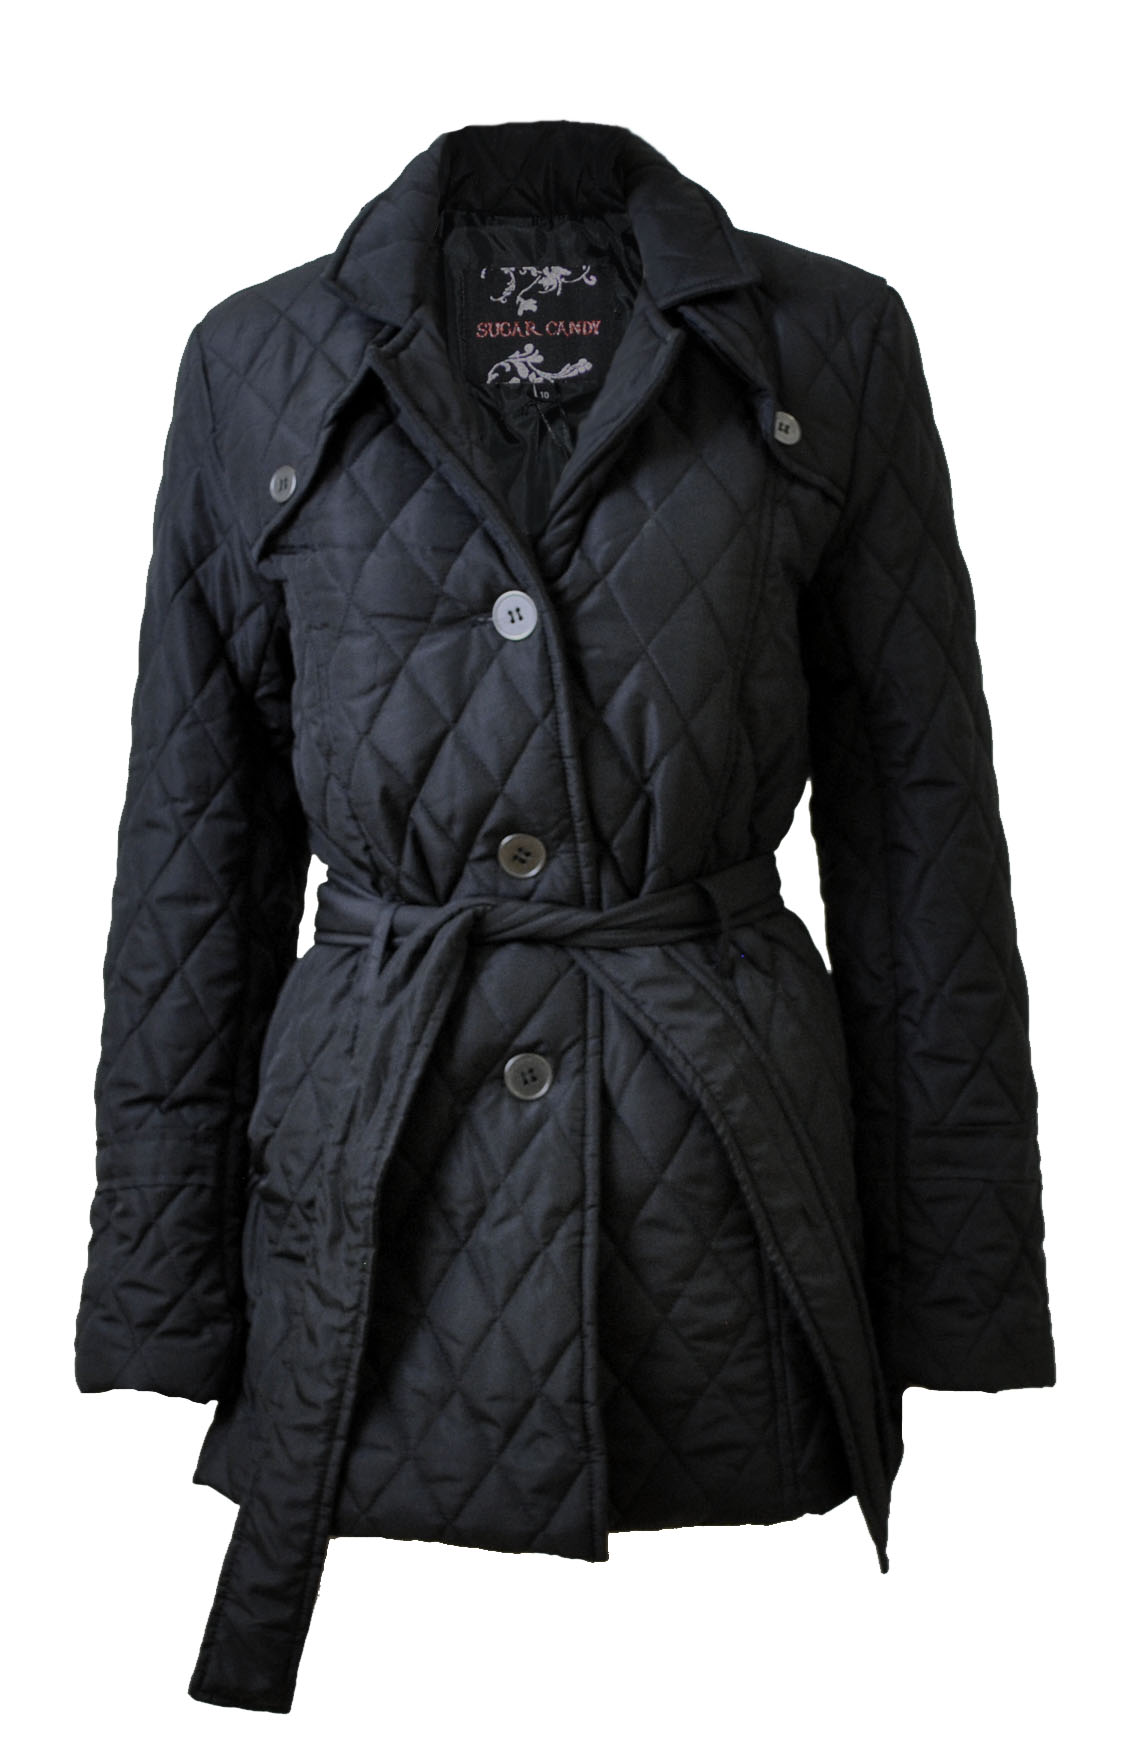 Nappa sheepskin biker womens quilted leather jacket black. Highlighting your glamour and beauty in the way that never has been experienced before. Made of .